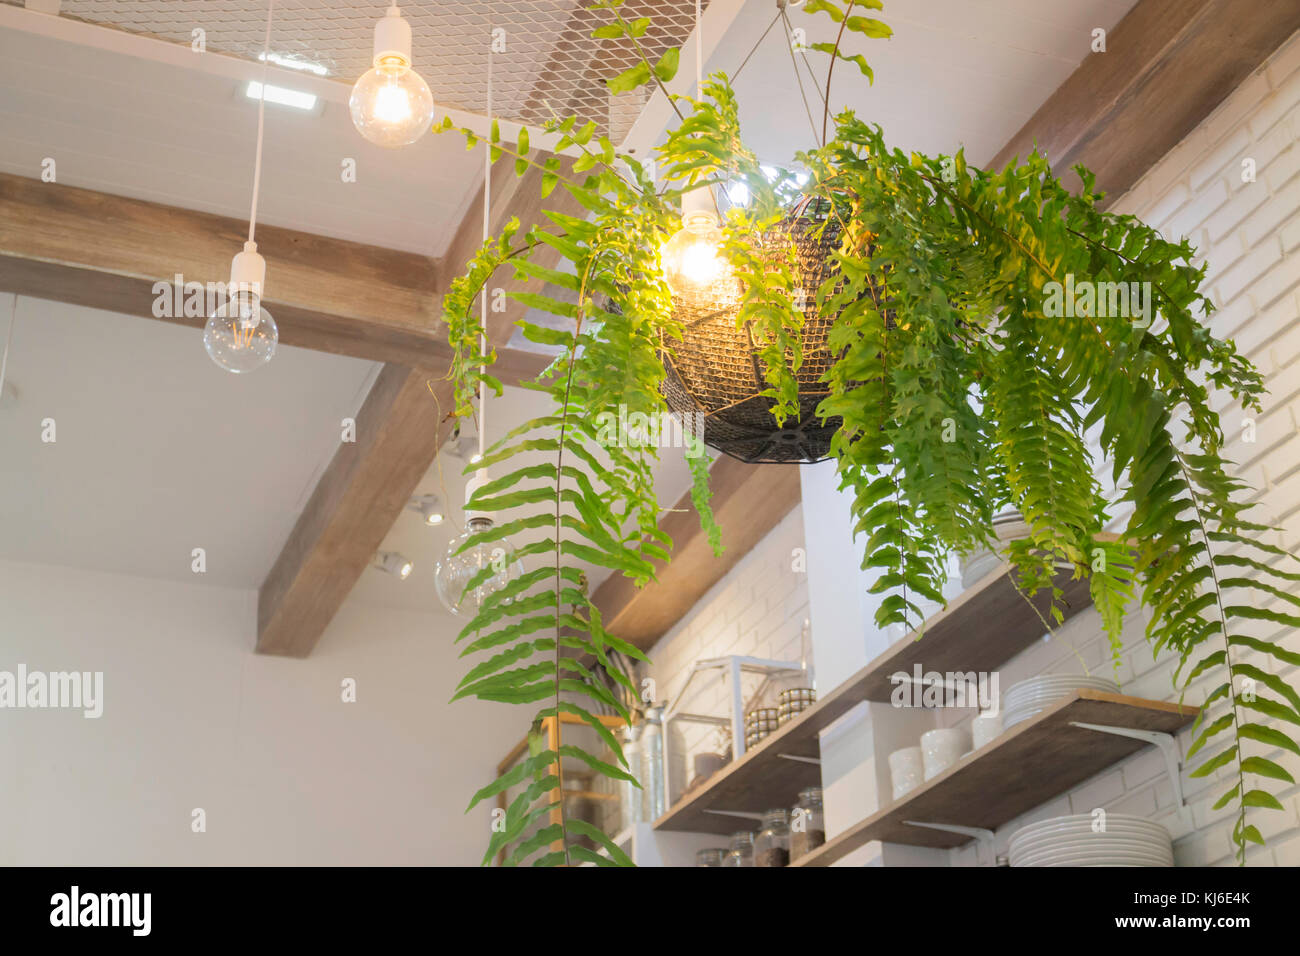 Fern In Plant Pot Hanging On Ceiling Stock Photo Stock Photo